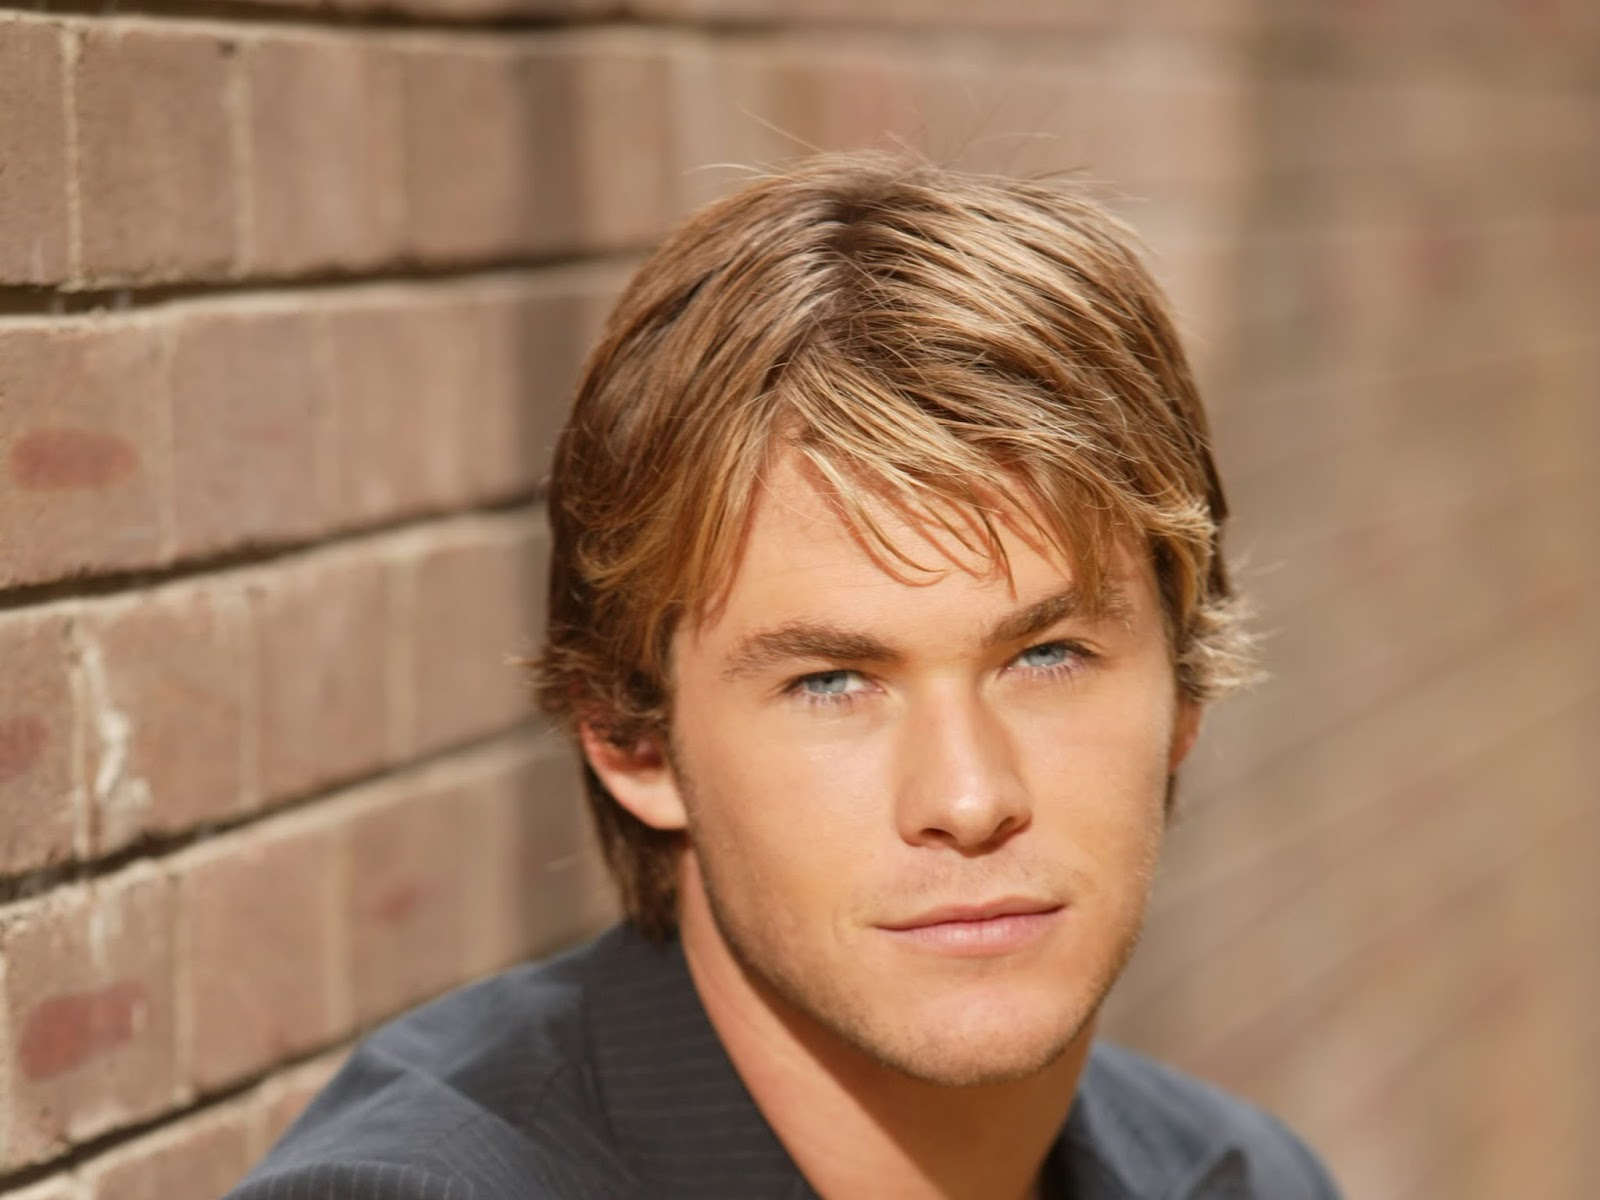 Global pictures gallery chris hemsworth pictures and hd wallpapers - Chris hemsworth hd images ...